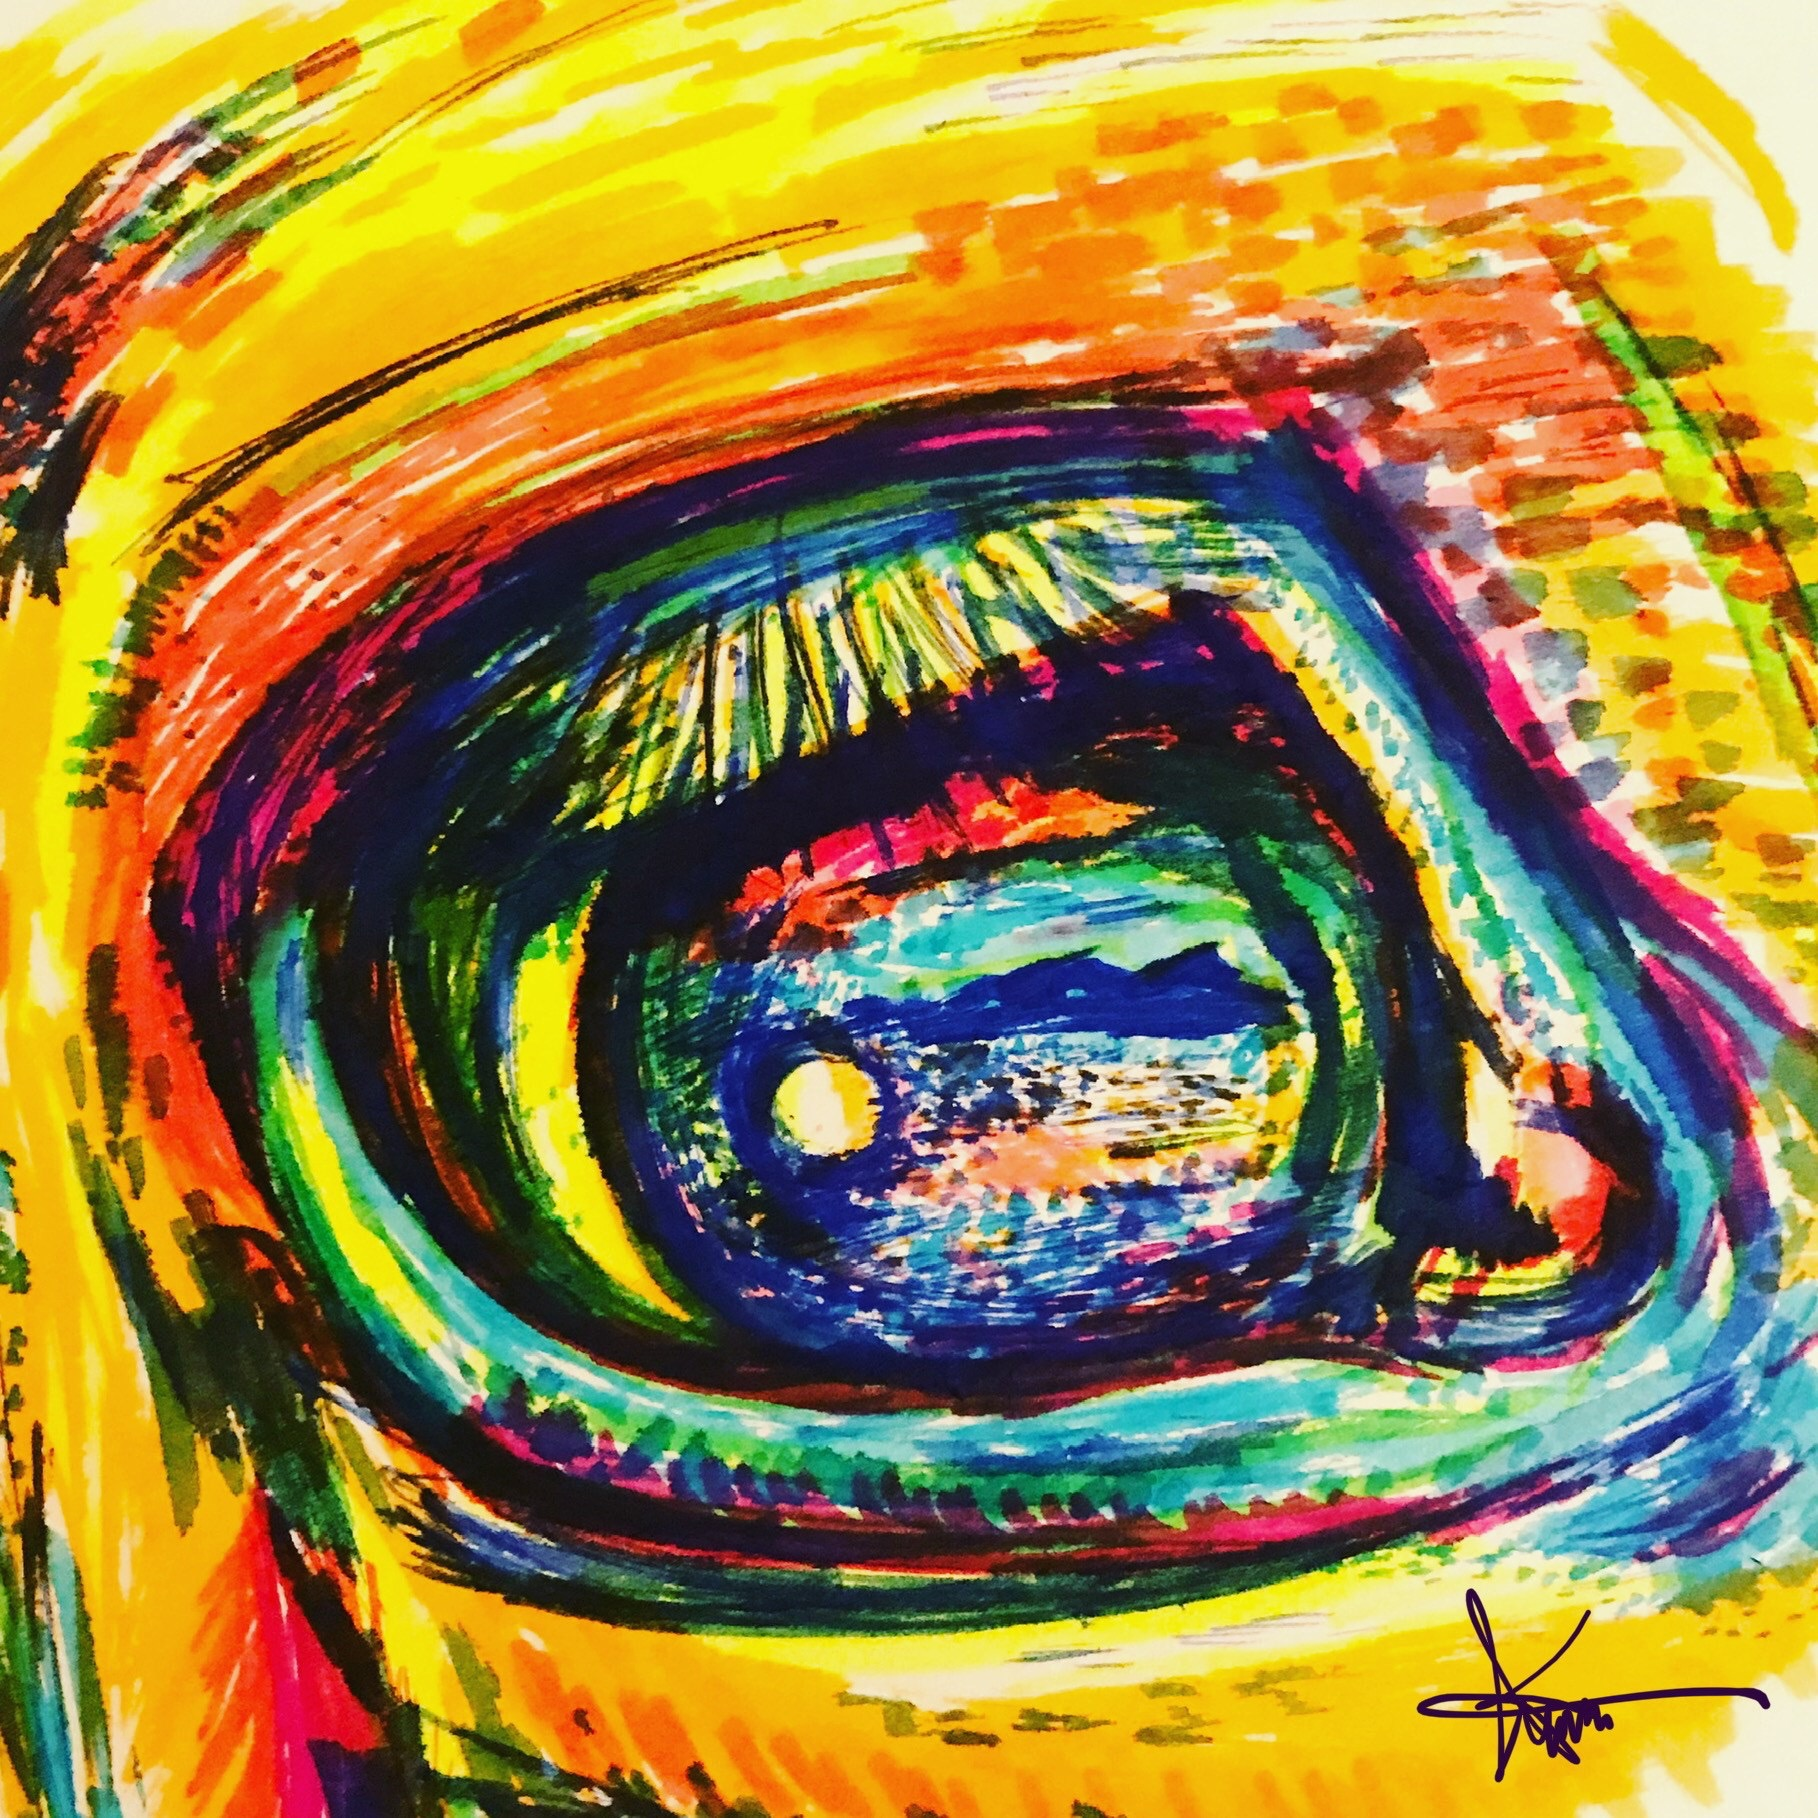 Drawing with Sharpie highlighters and digitally enhanced with graphic design.